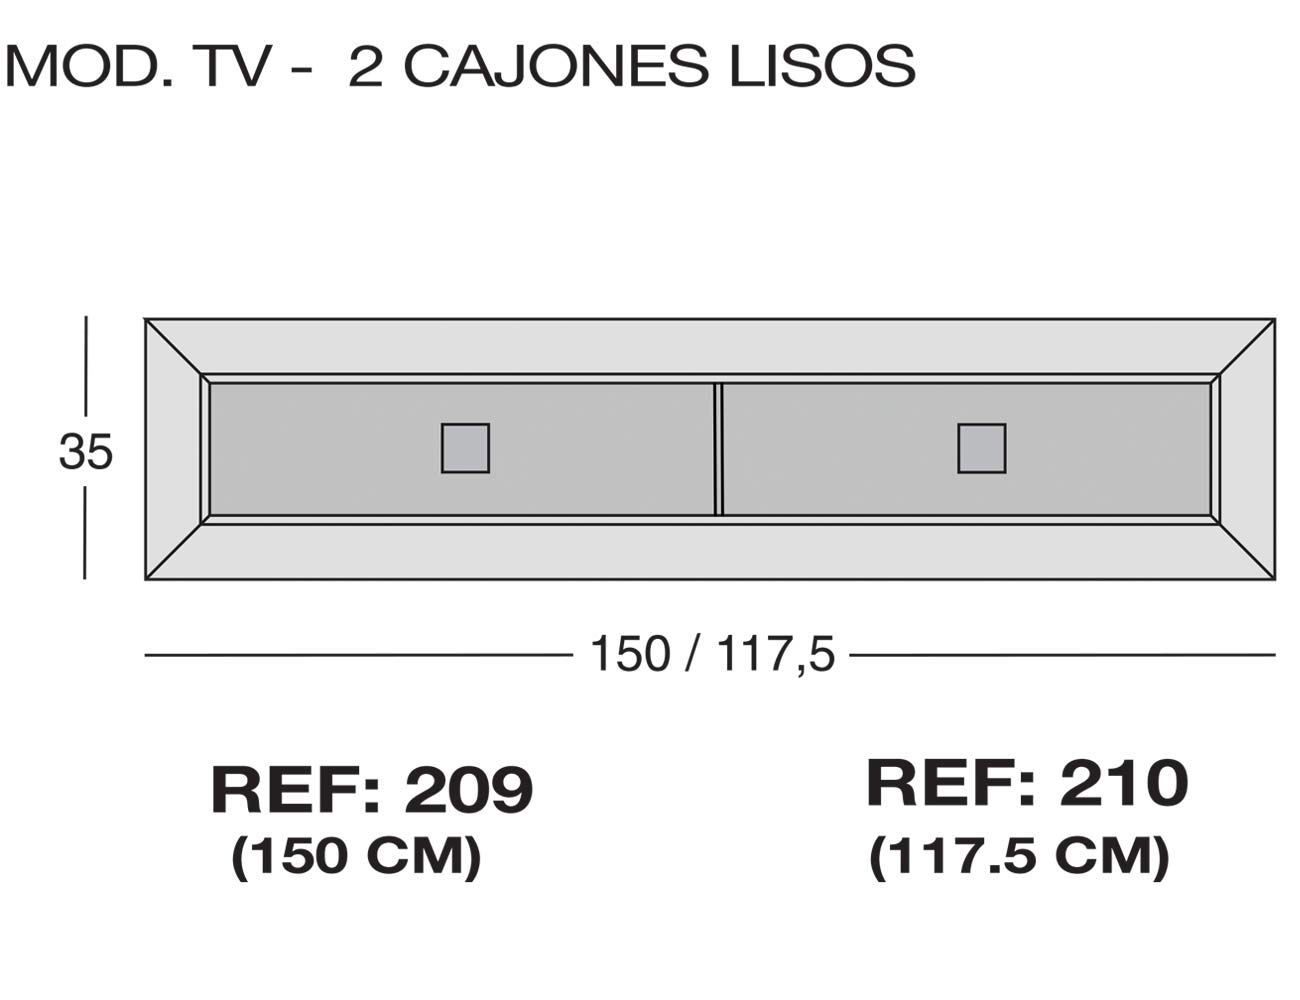 Modulo tv 2c lisos 209 2101